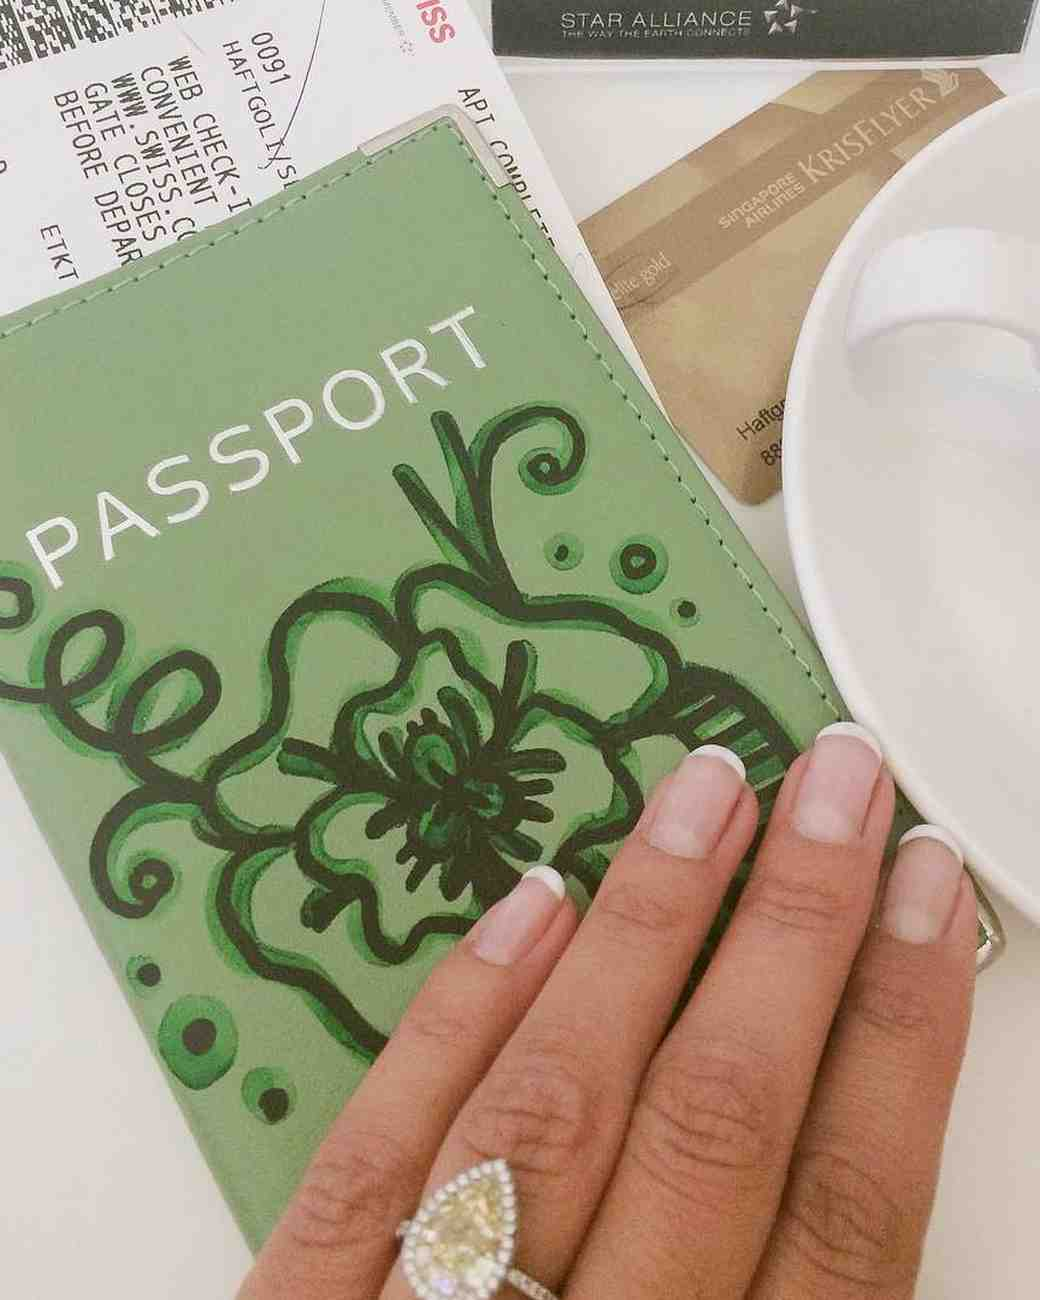 engagement-ring-selfies-passport-0216.jpg